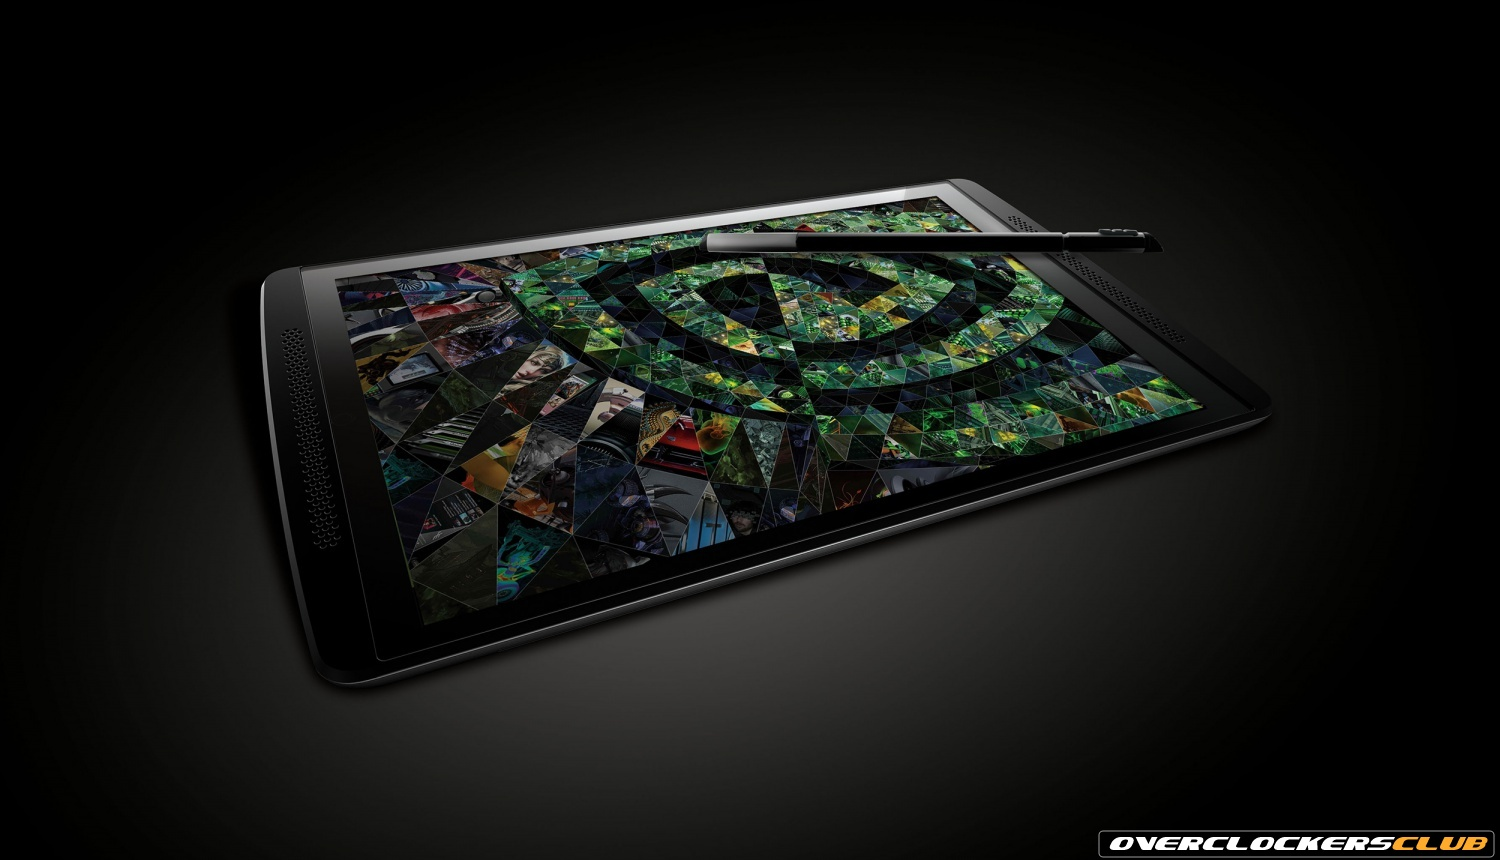 NVIDIA Unveils the Tegra Note; 7-Inch Android Tablet Powered by Tegra 4